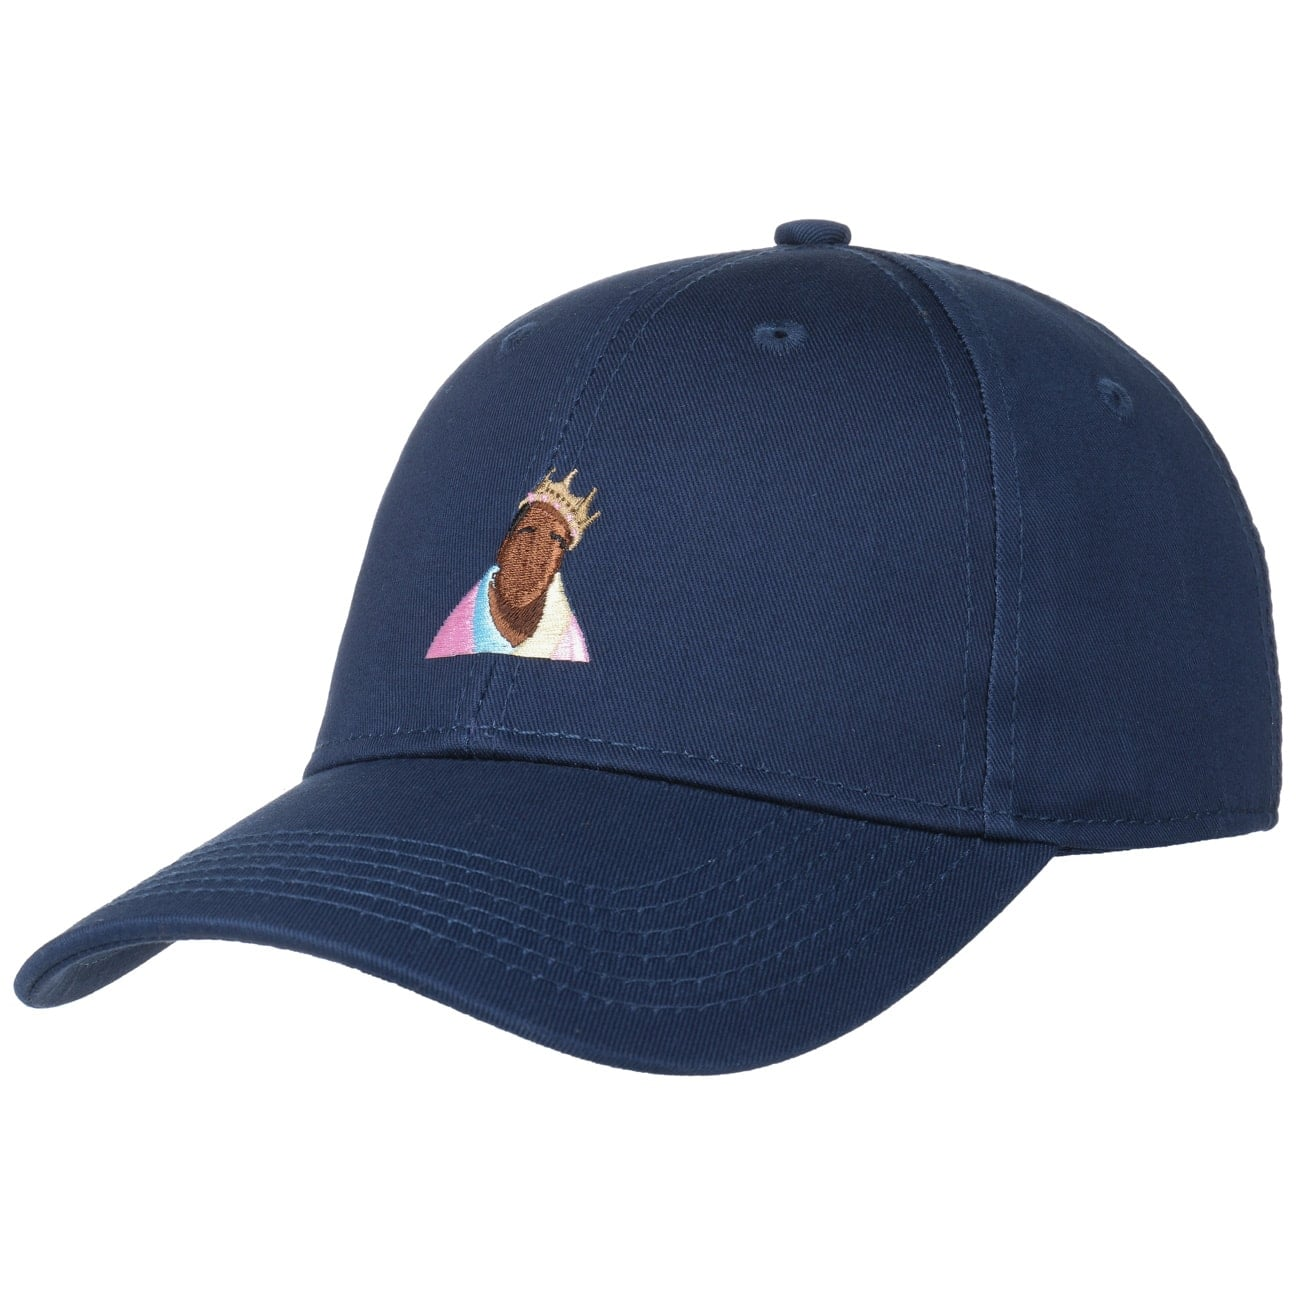 dream-curved-strapback-cap-by-cayler-sons-basecap